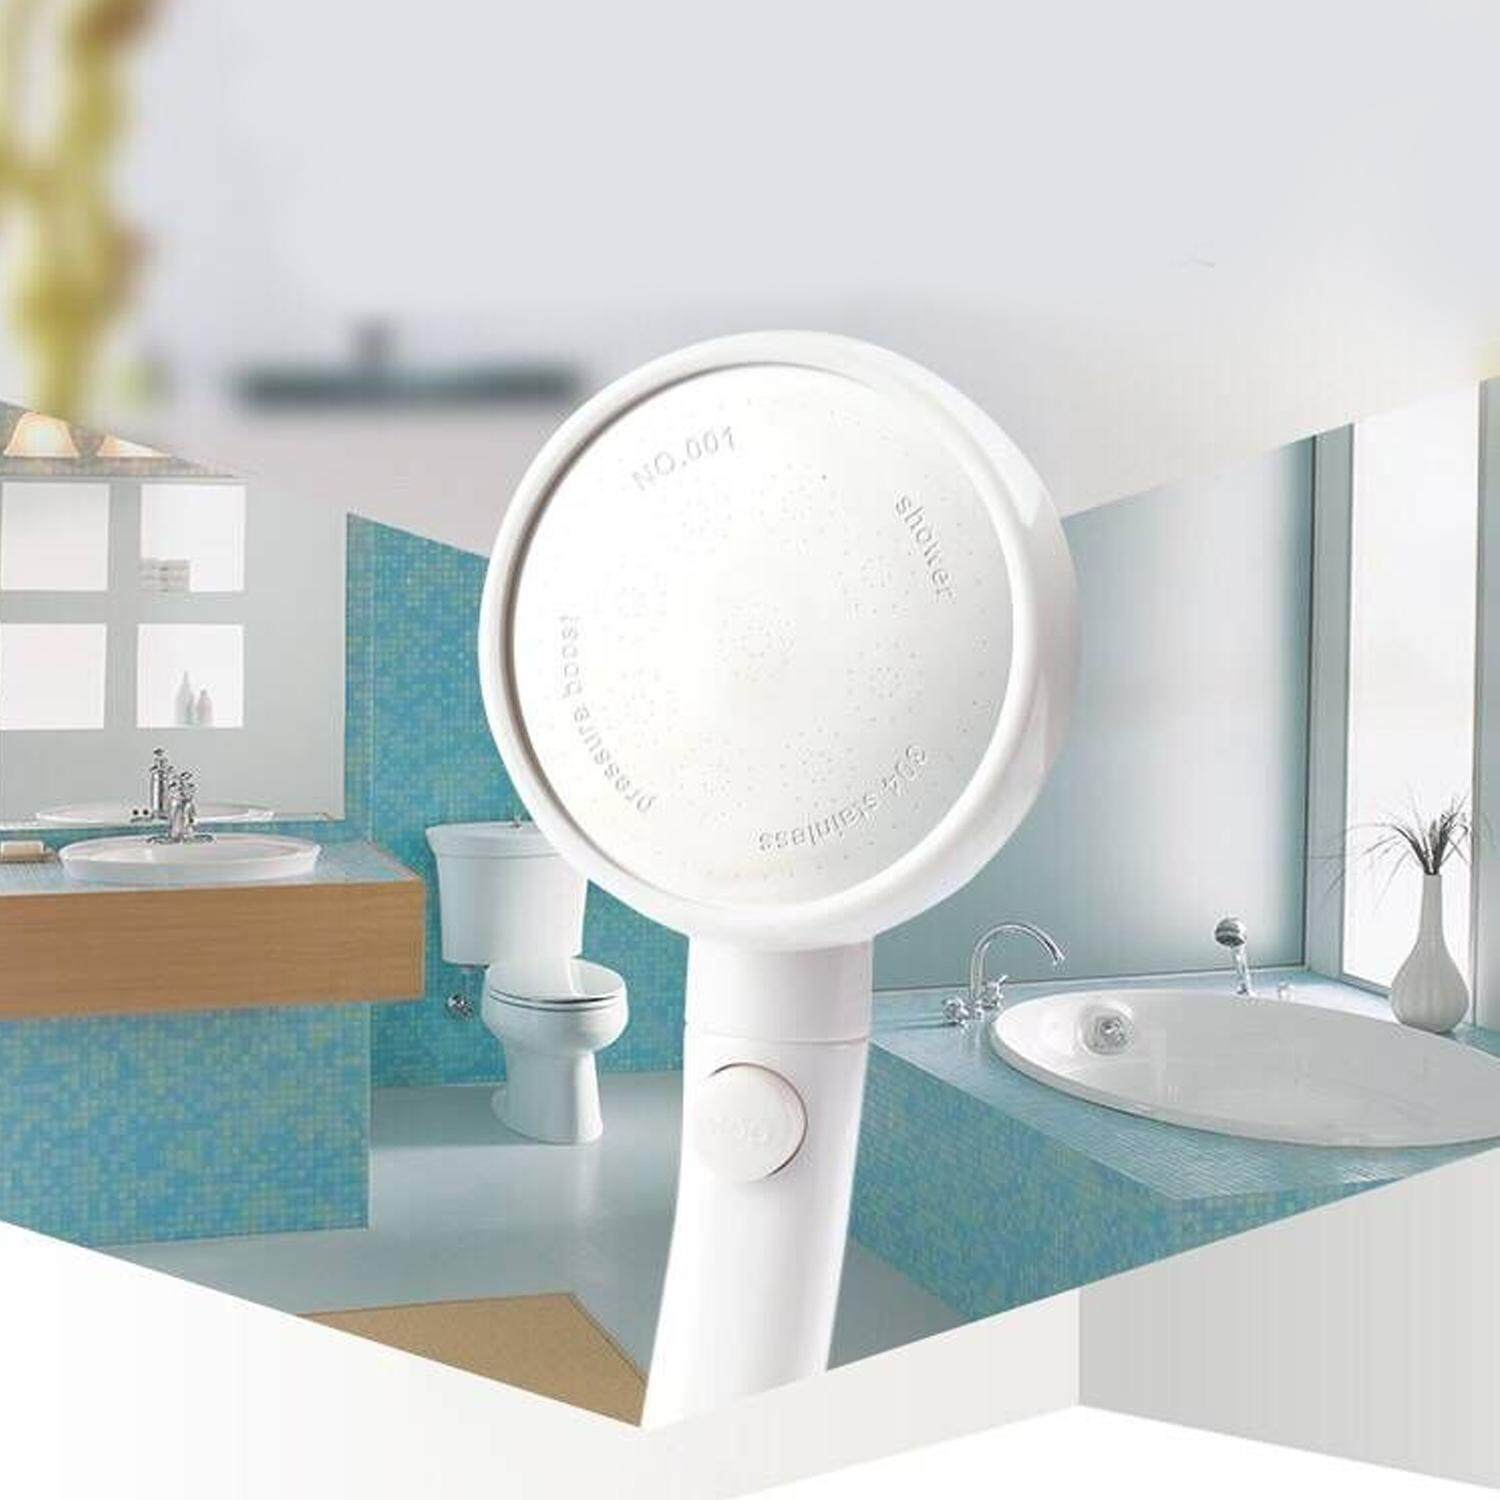 Water-Saving Spa Detachable 360-Degree Rotating High Pressure Handheld Shower Head Universal Showerhead Replacement Part With Stop Pause Button - Intl By Stoneky.